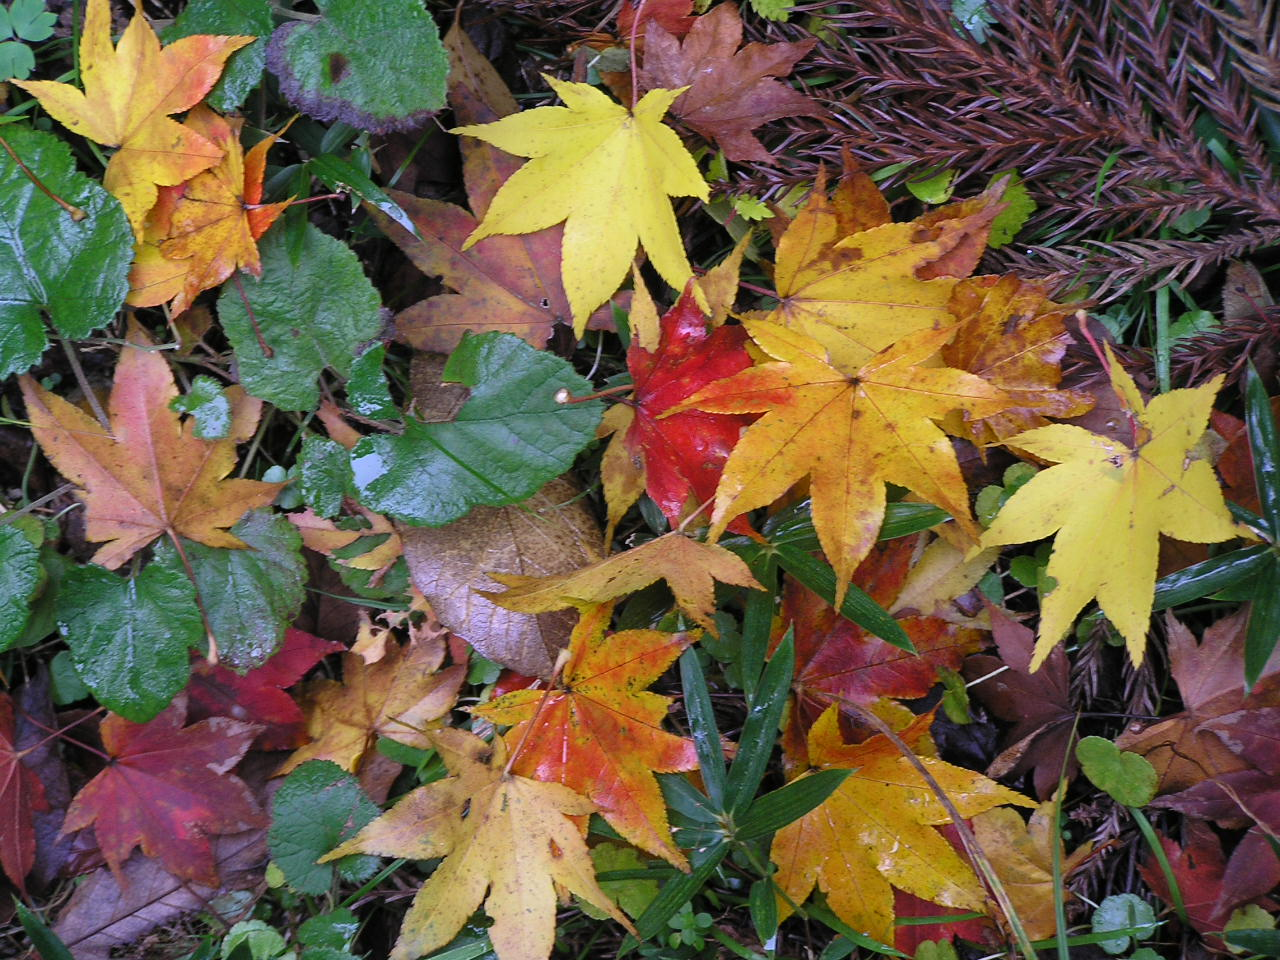 Unhealthy & Losing Your Leaves? Chiropractic Can Change Your Season